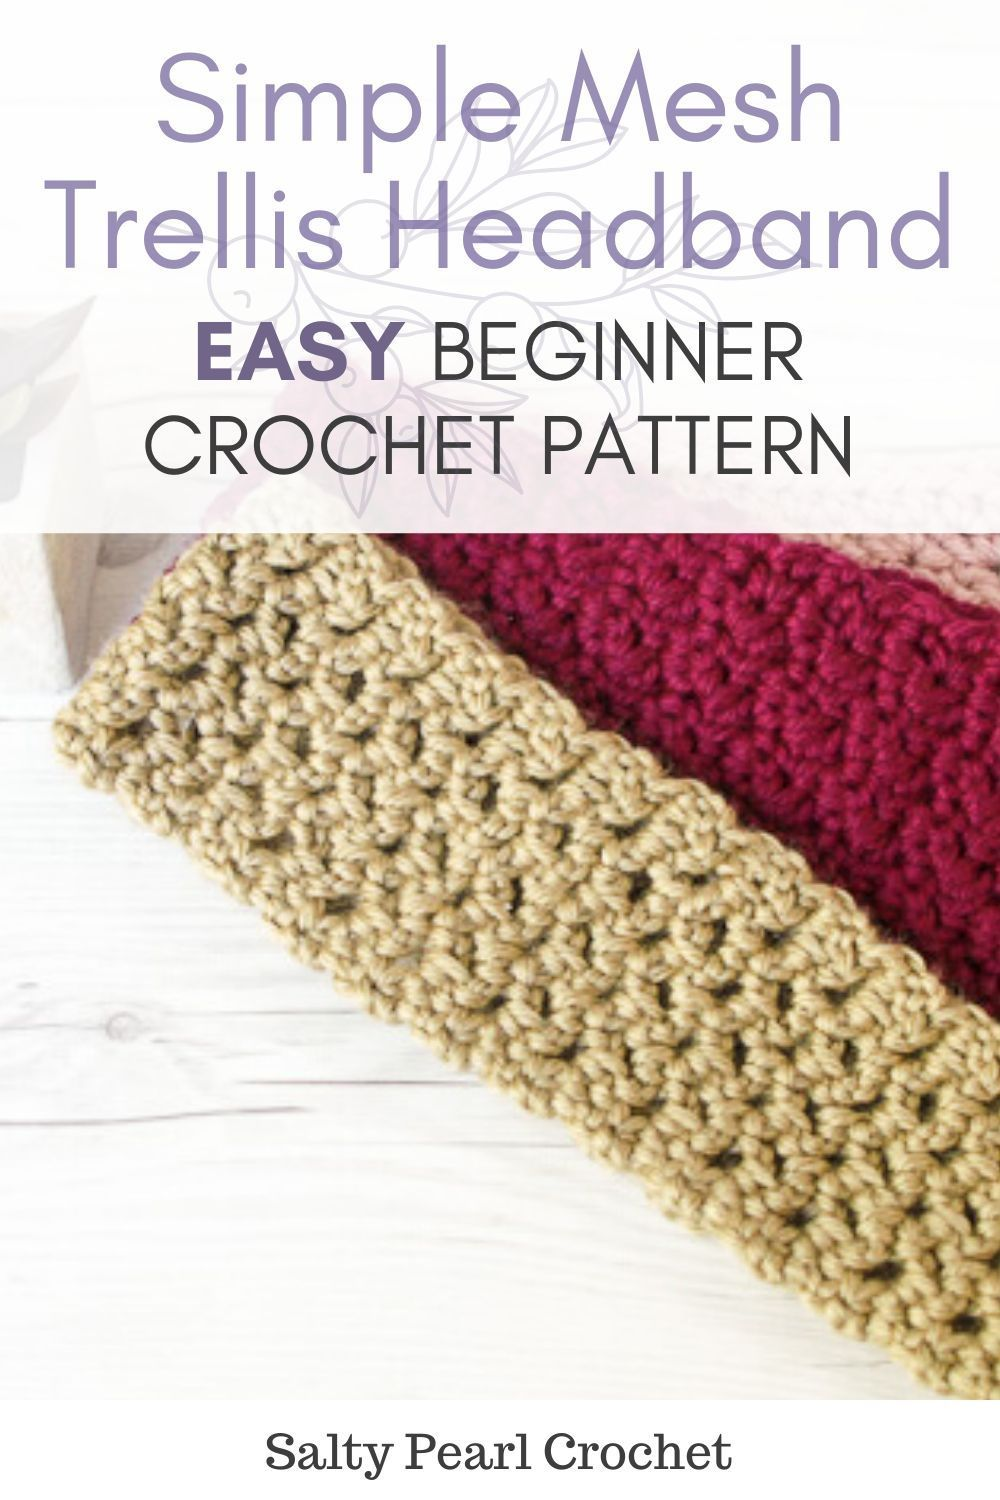 Simple Mesh Trellis Headband - A Free Crochet Headband Pattern